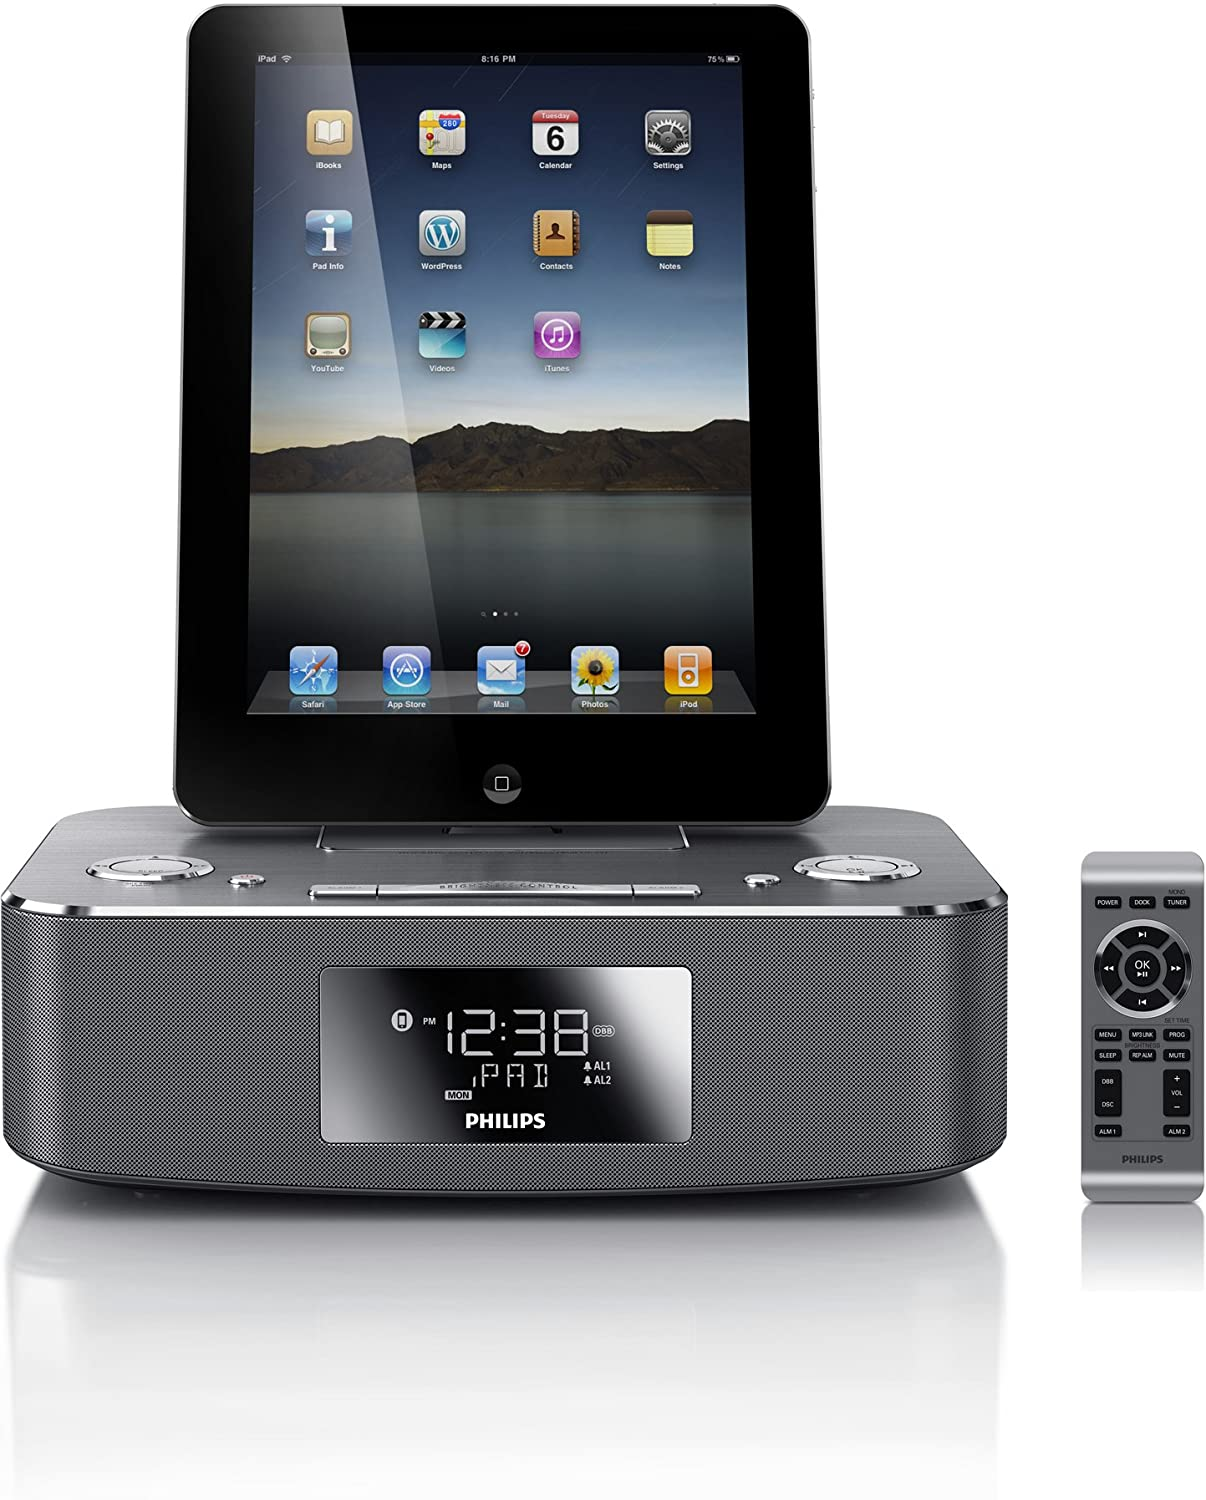 philips dc291 ipod iphone ipad alarm clock radio speaker docking station ebay. Black Bedroom Furniture Sets. Home Design Ideas